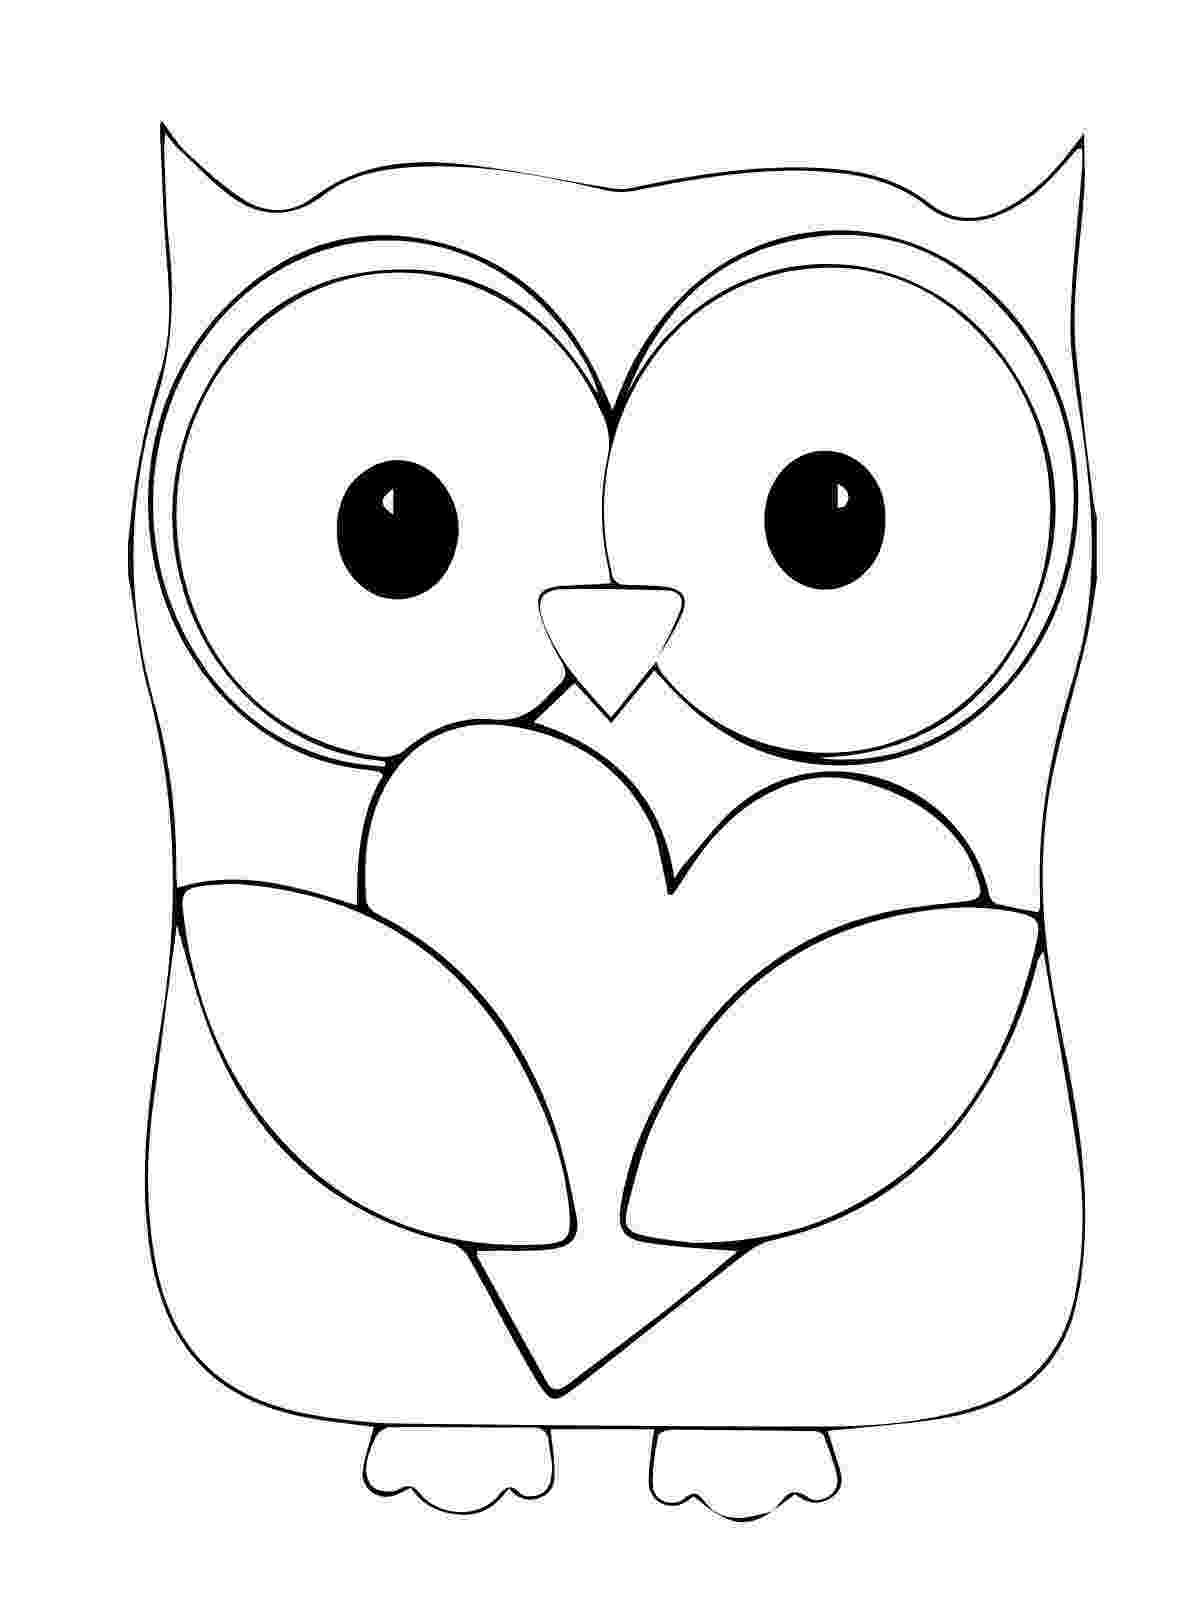 owl colouring template owl heart coloring pages for kids coloring page owl colouring template